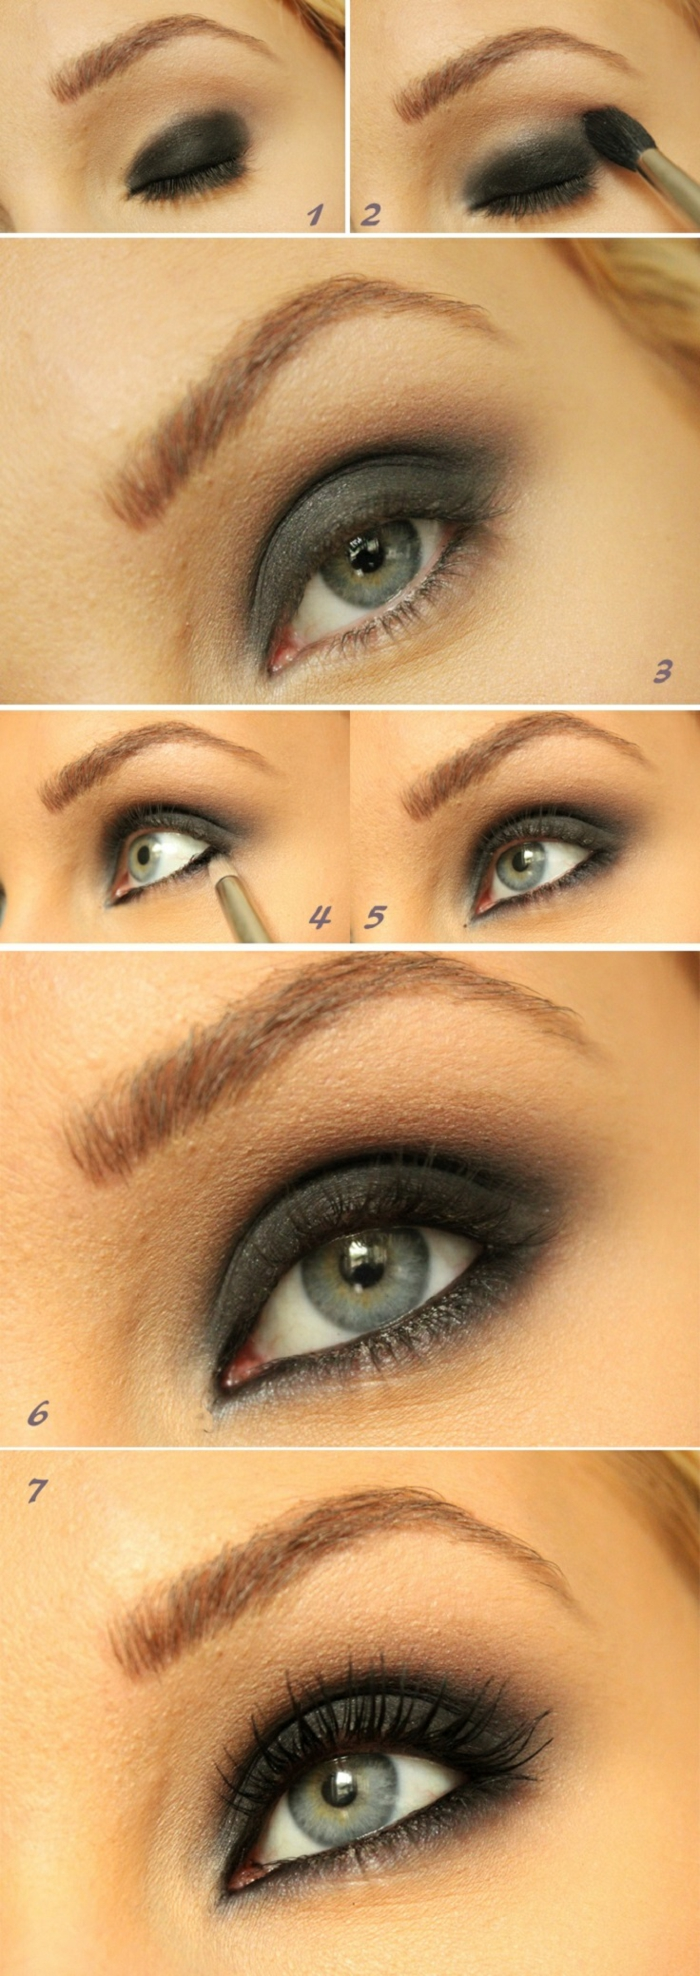 maquillage-yeux-vert-marron-maquillage-soirée-yeux-verts-étapes-resized